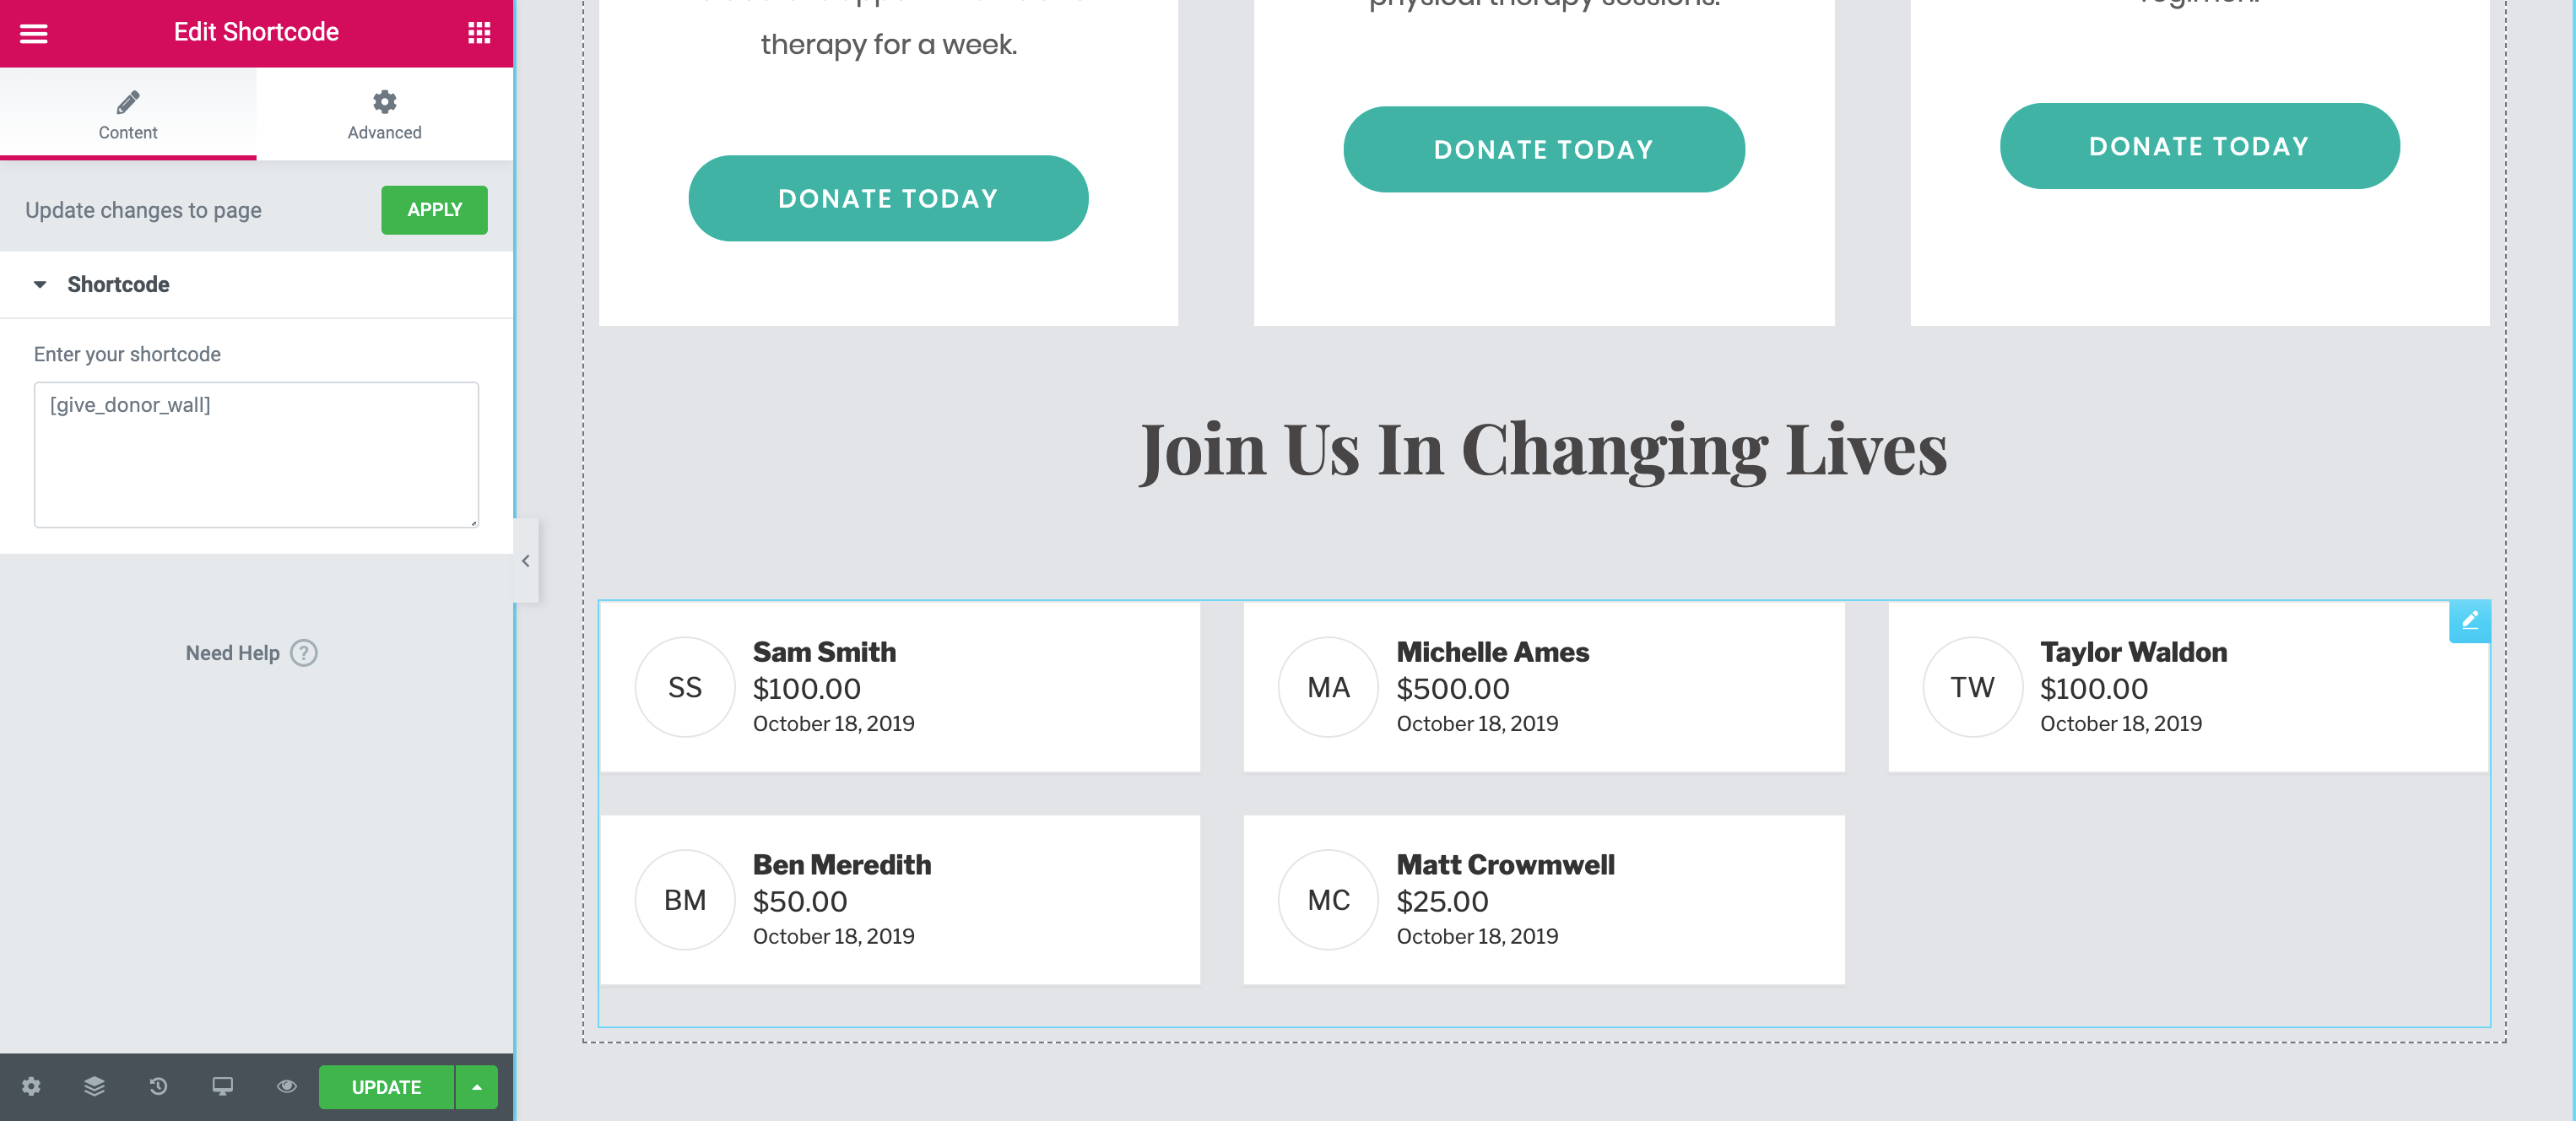 Your donor wall will show people who have given, how much they donated, and any comments they left.